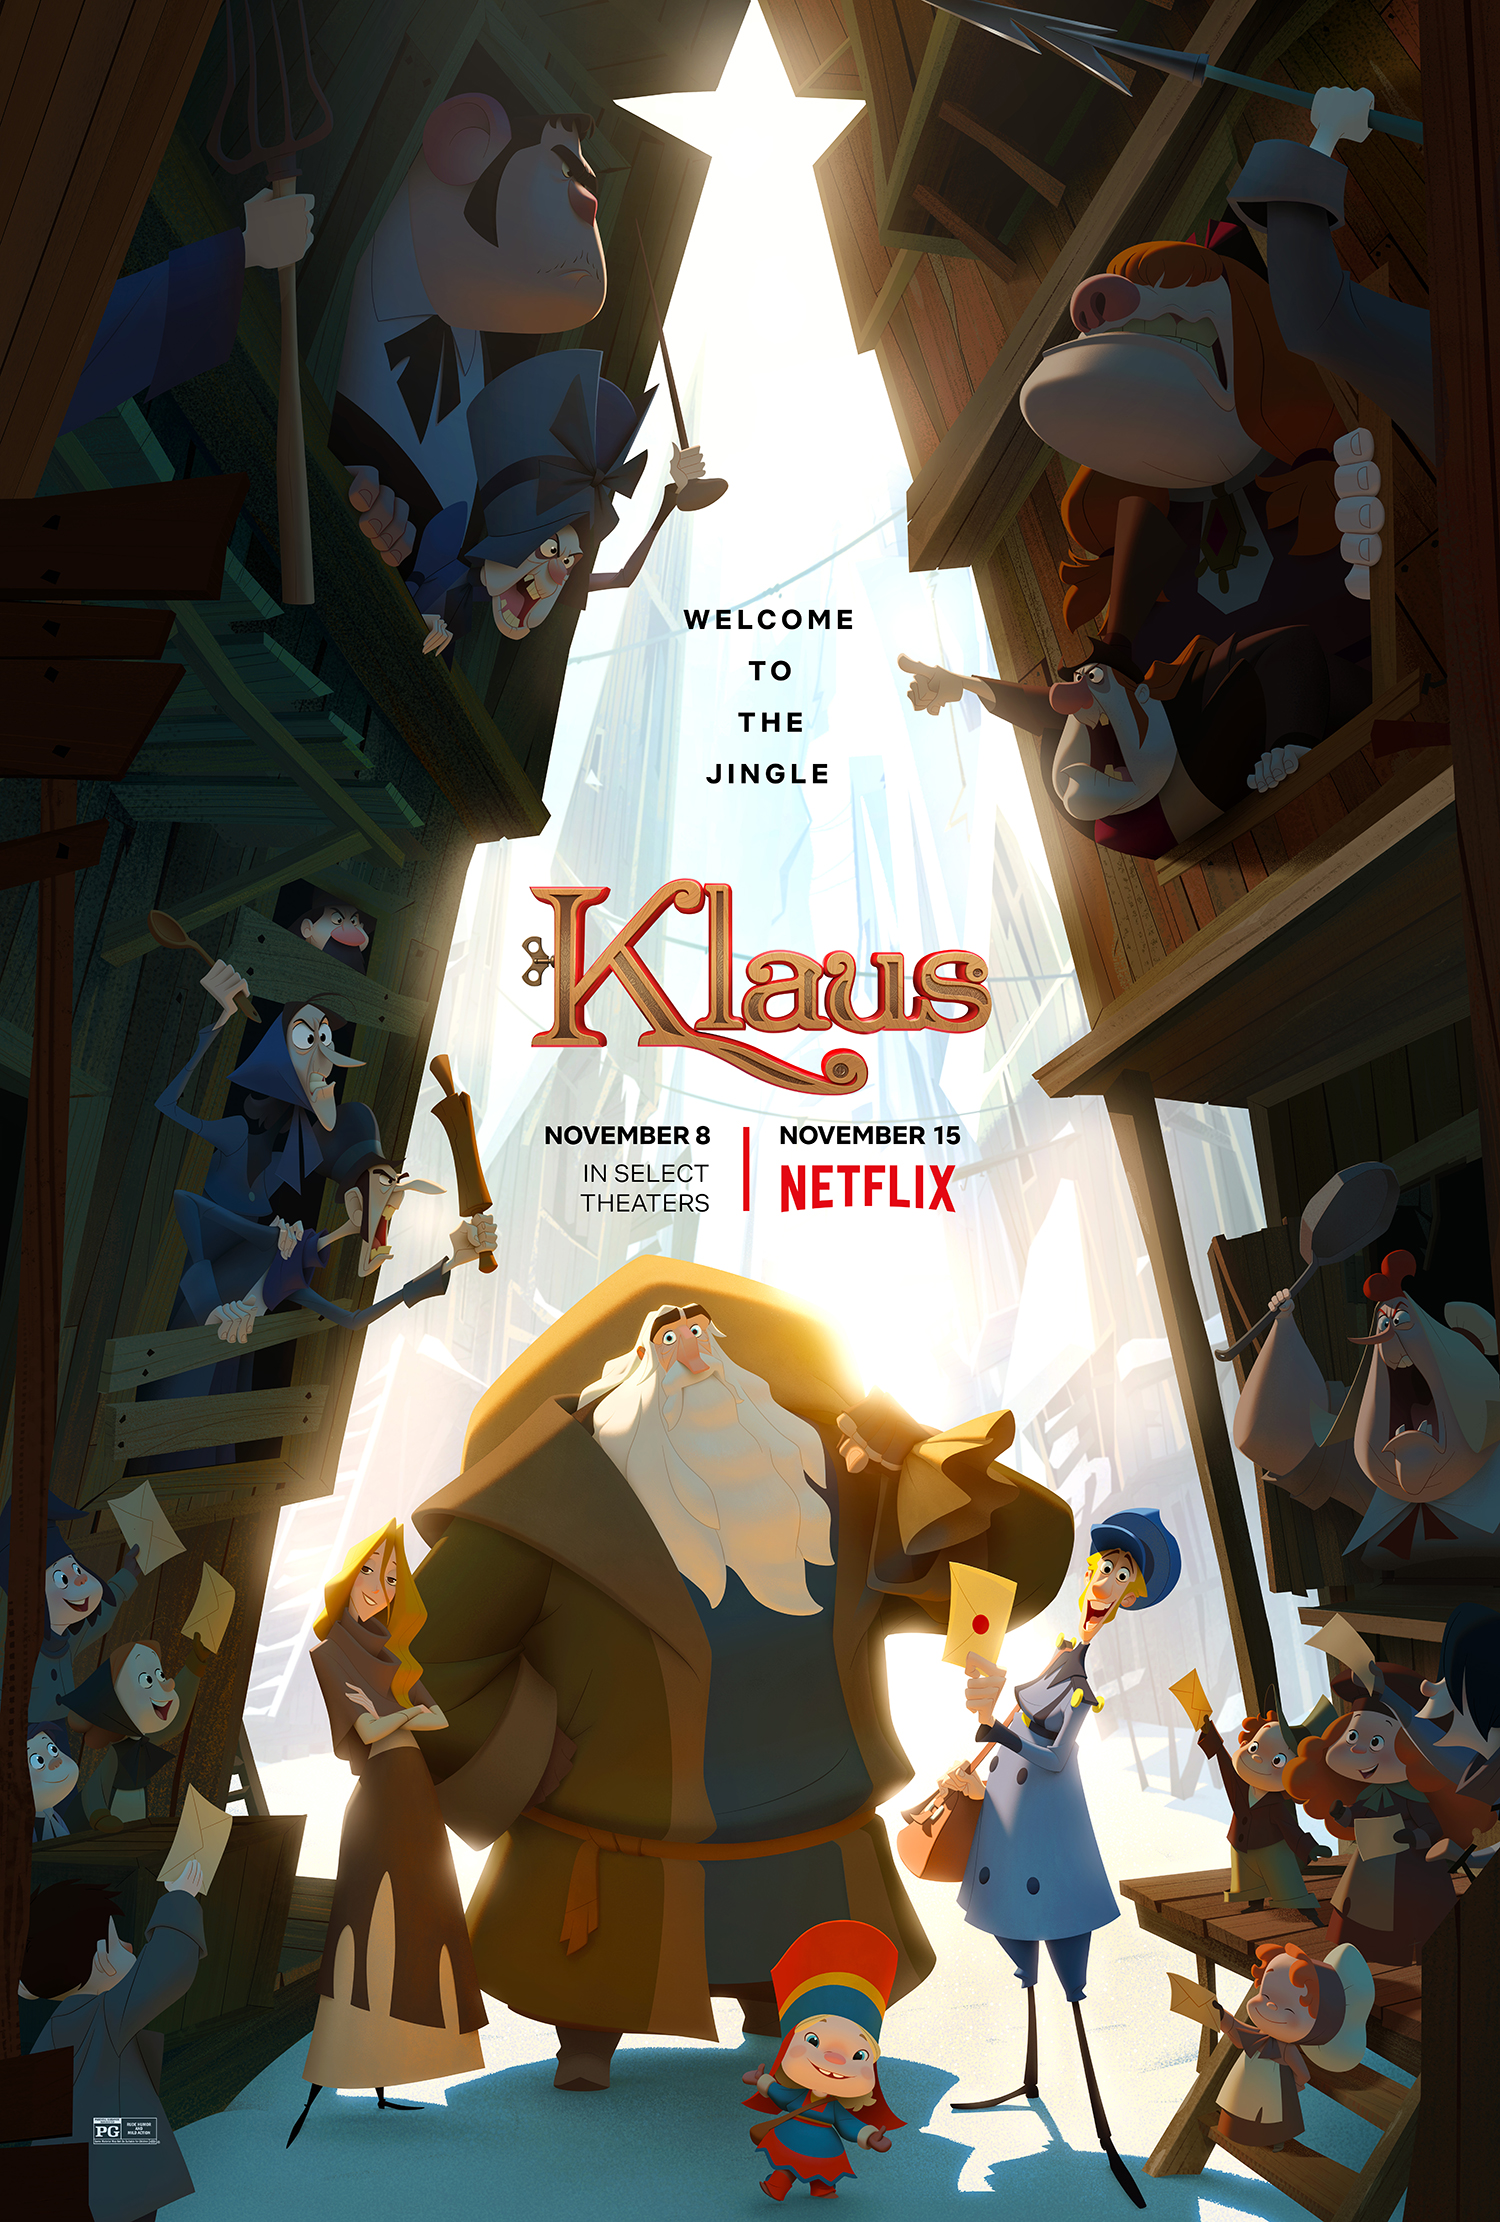 Image result for klaus netflix poster""